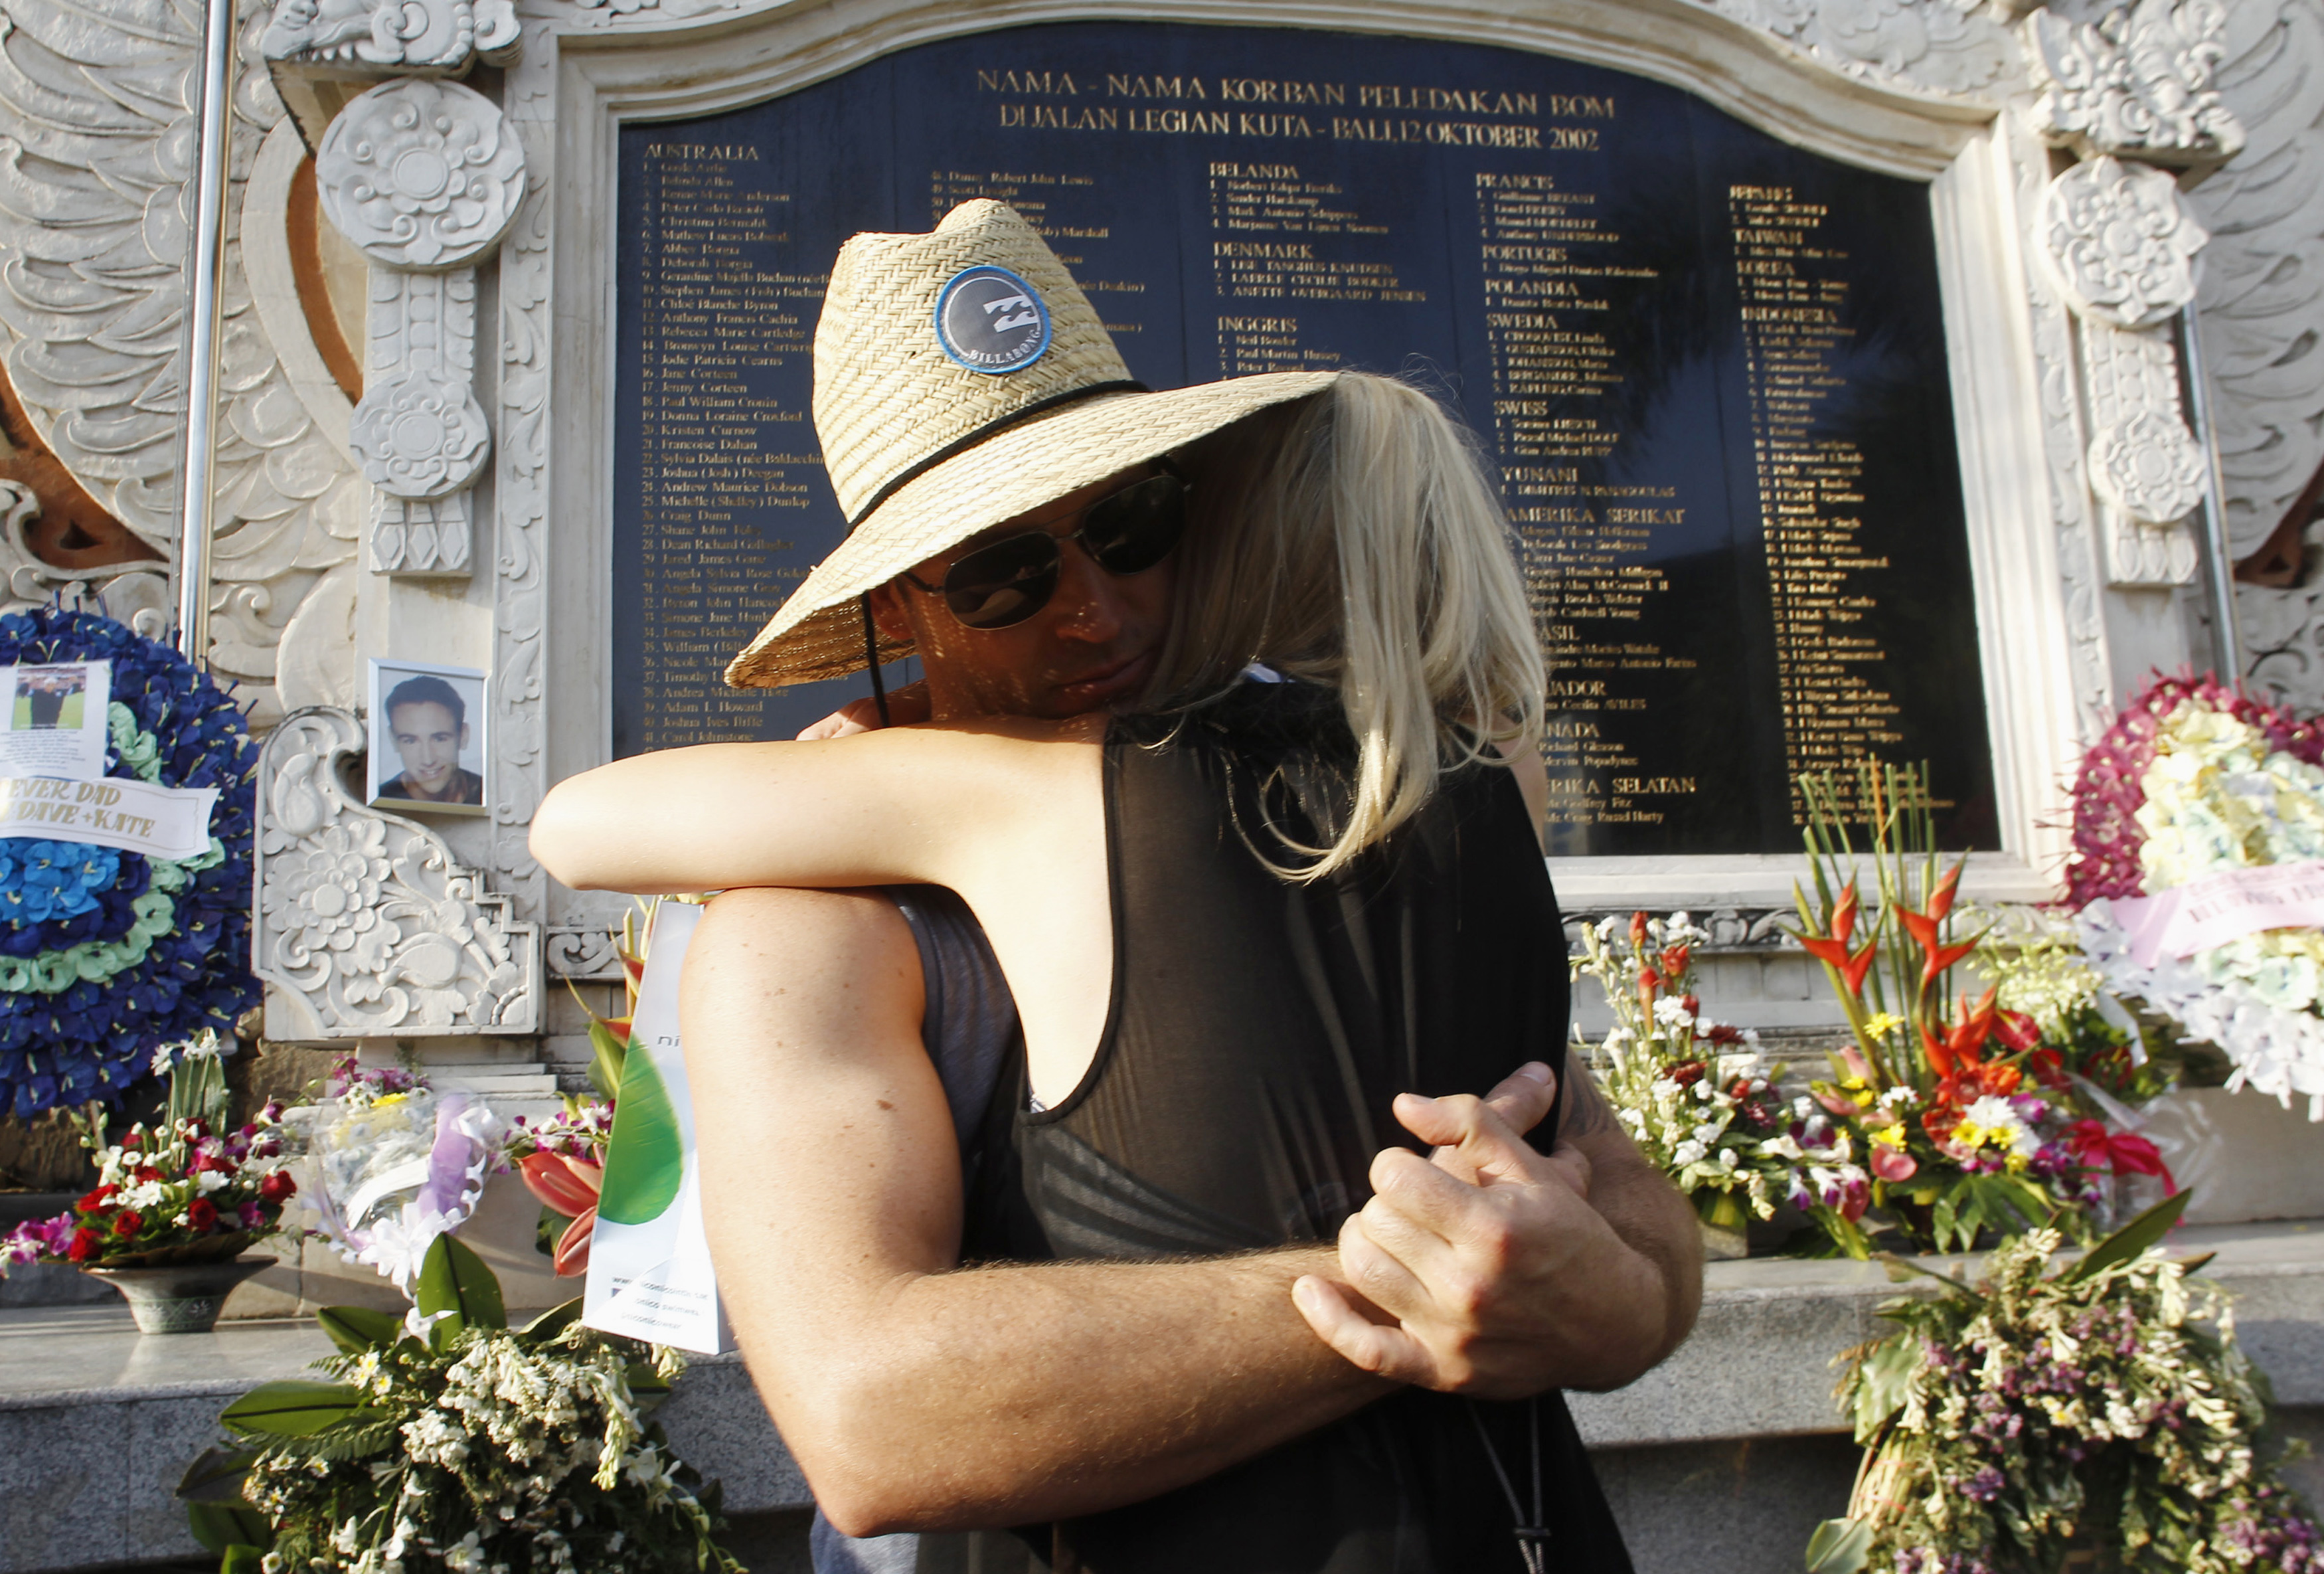 Australian citizens mourn for their compatriots who were victims of the 2002 Bali bomb blasts, in front of the memorial monument, ahead of the tenth anniversary of the incident in Kuta, Bali October 11, 2012.